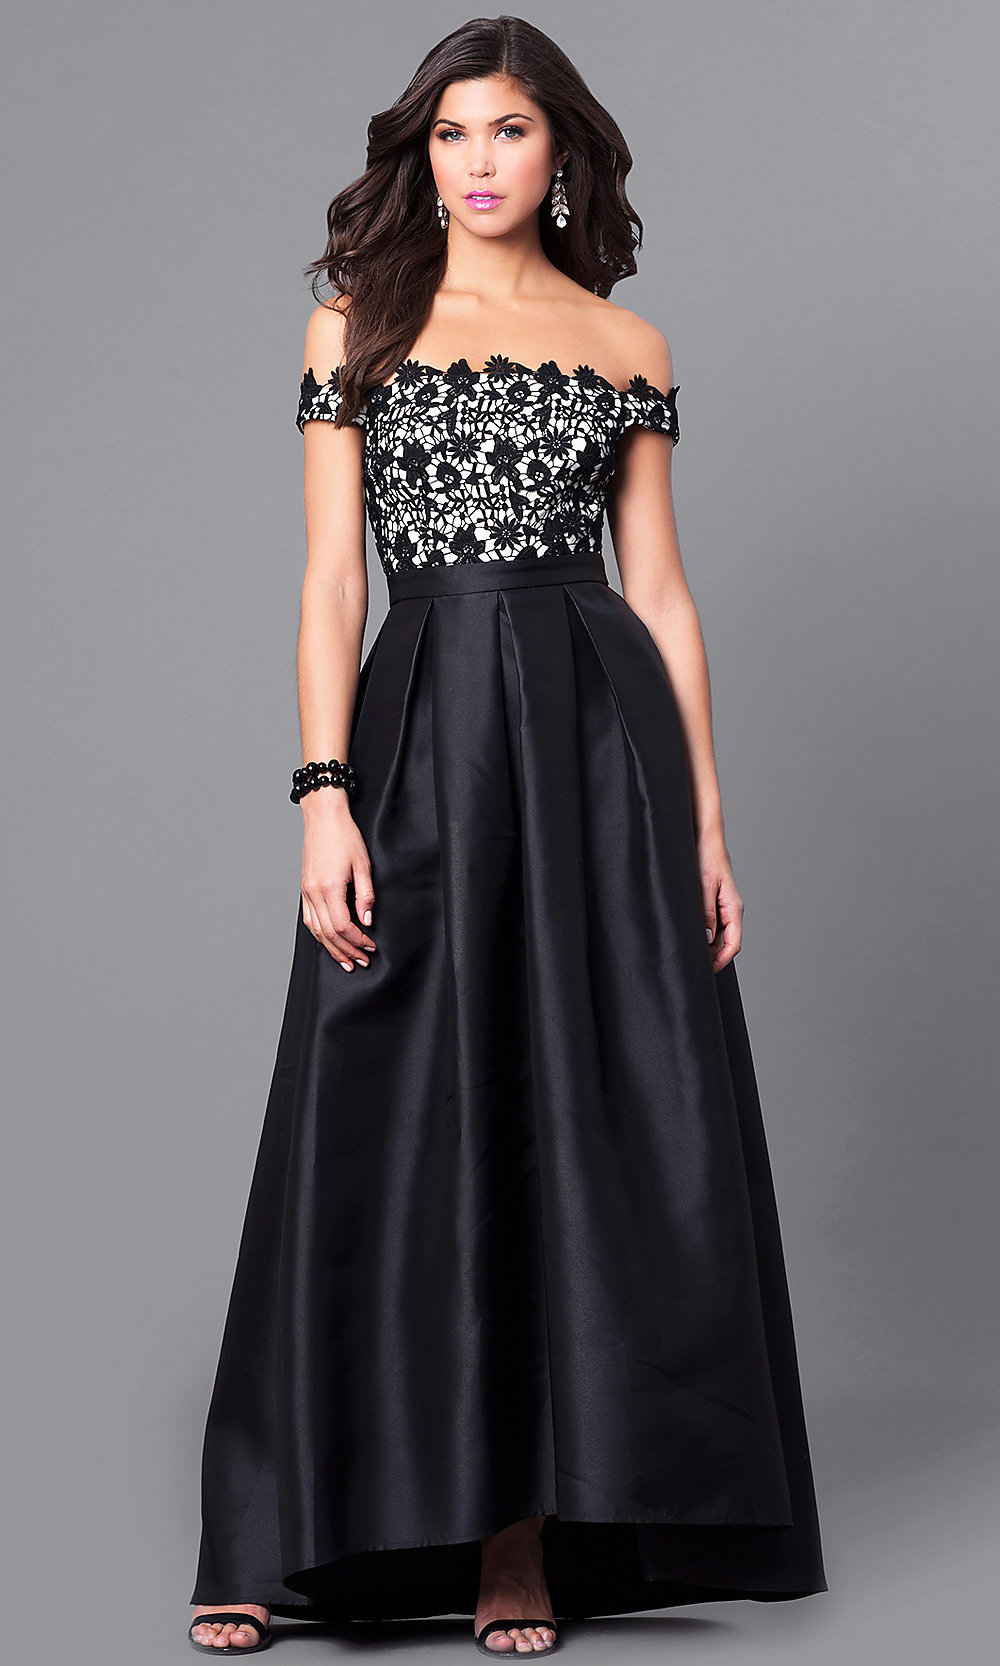 ... high-low prom dress with lace. Style. Tap to expand d96ef7335